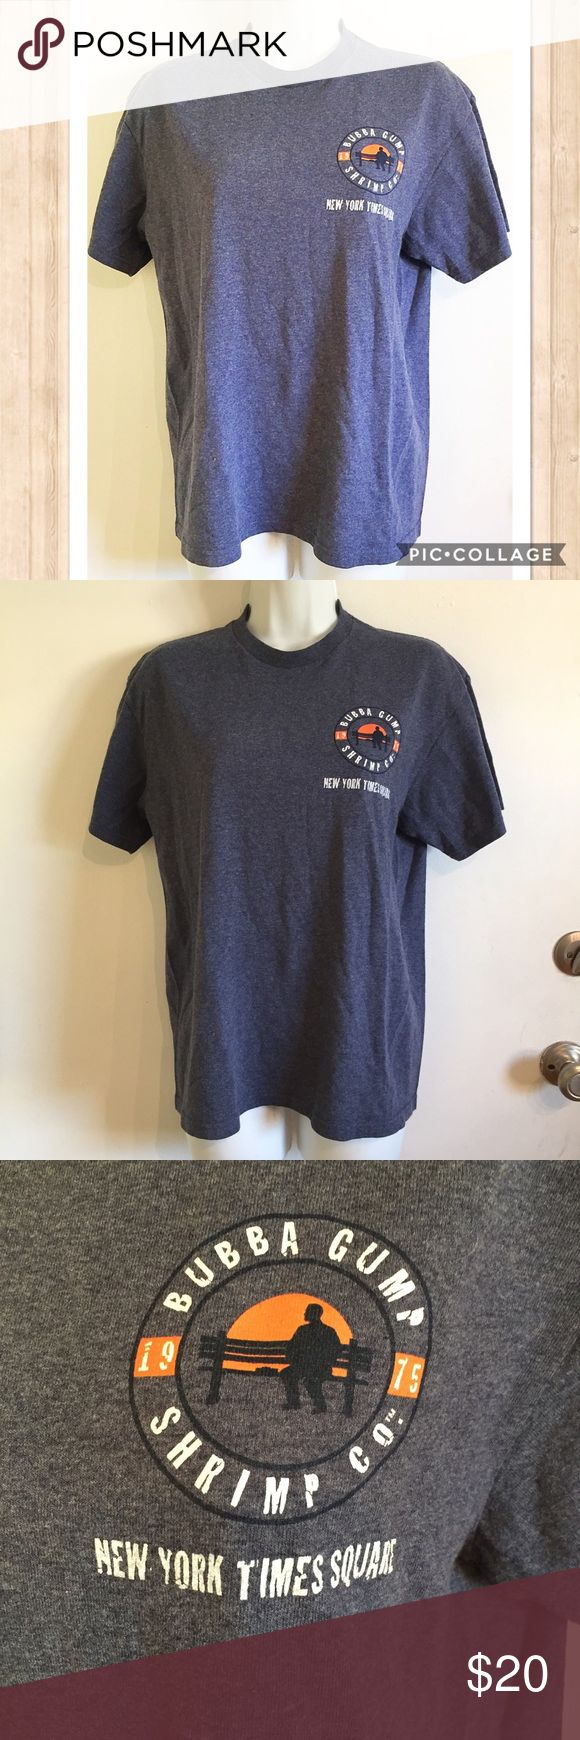 """Bubba Gump Shrimp Co NYC Times Square Tee Bubba Gump Shrimp Co New York City Times Square souvenir tee. Size medium. Back says """"Mama always said, 'Life is like a box of chocolates, you never know what you're gonna get."""" - Forrest Gump.  #bubbagump #shrimp #forrestgump #souvinier #tee #nyc #newyork #timessquare #medium #tee #lifeislikeaboxofchocolates #quote #movie #punkydoodle  No modeling Smoke free home I do discount bundles Tops Tees - Short Sleeve"""